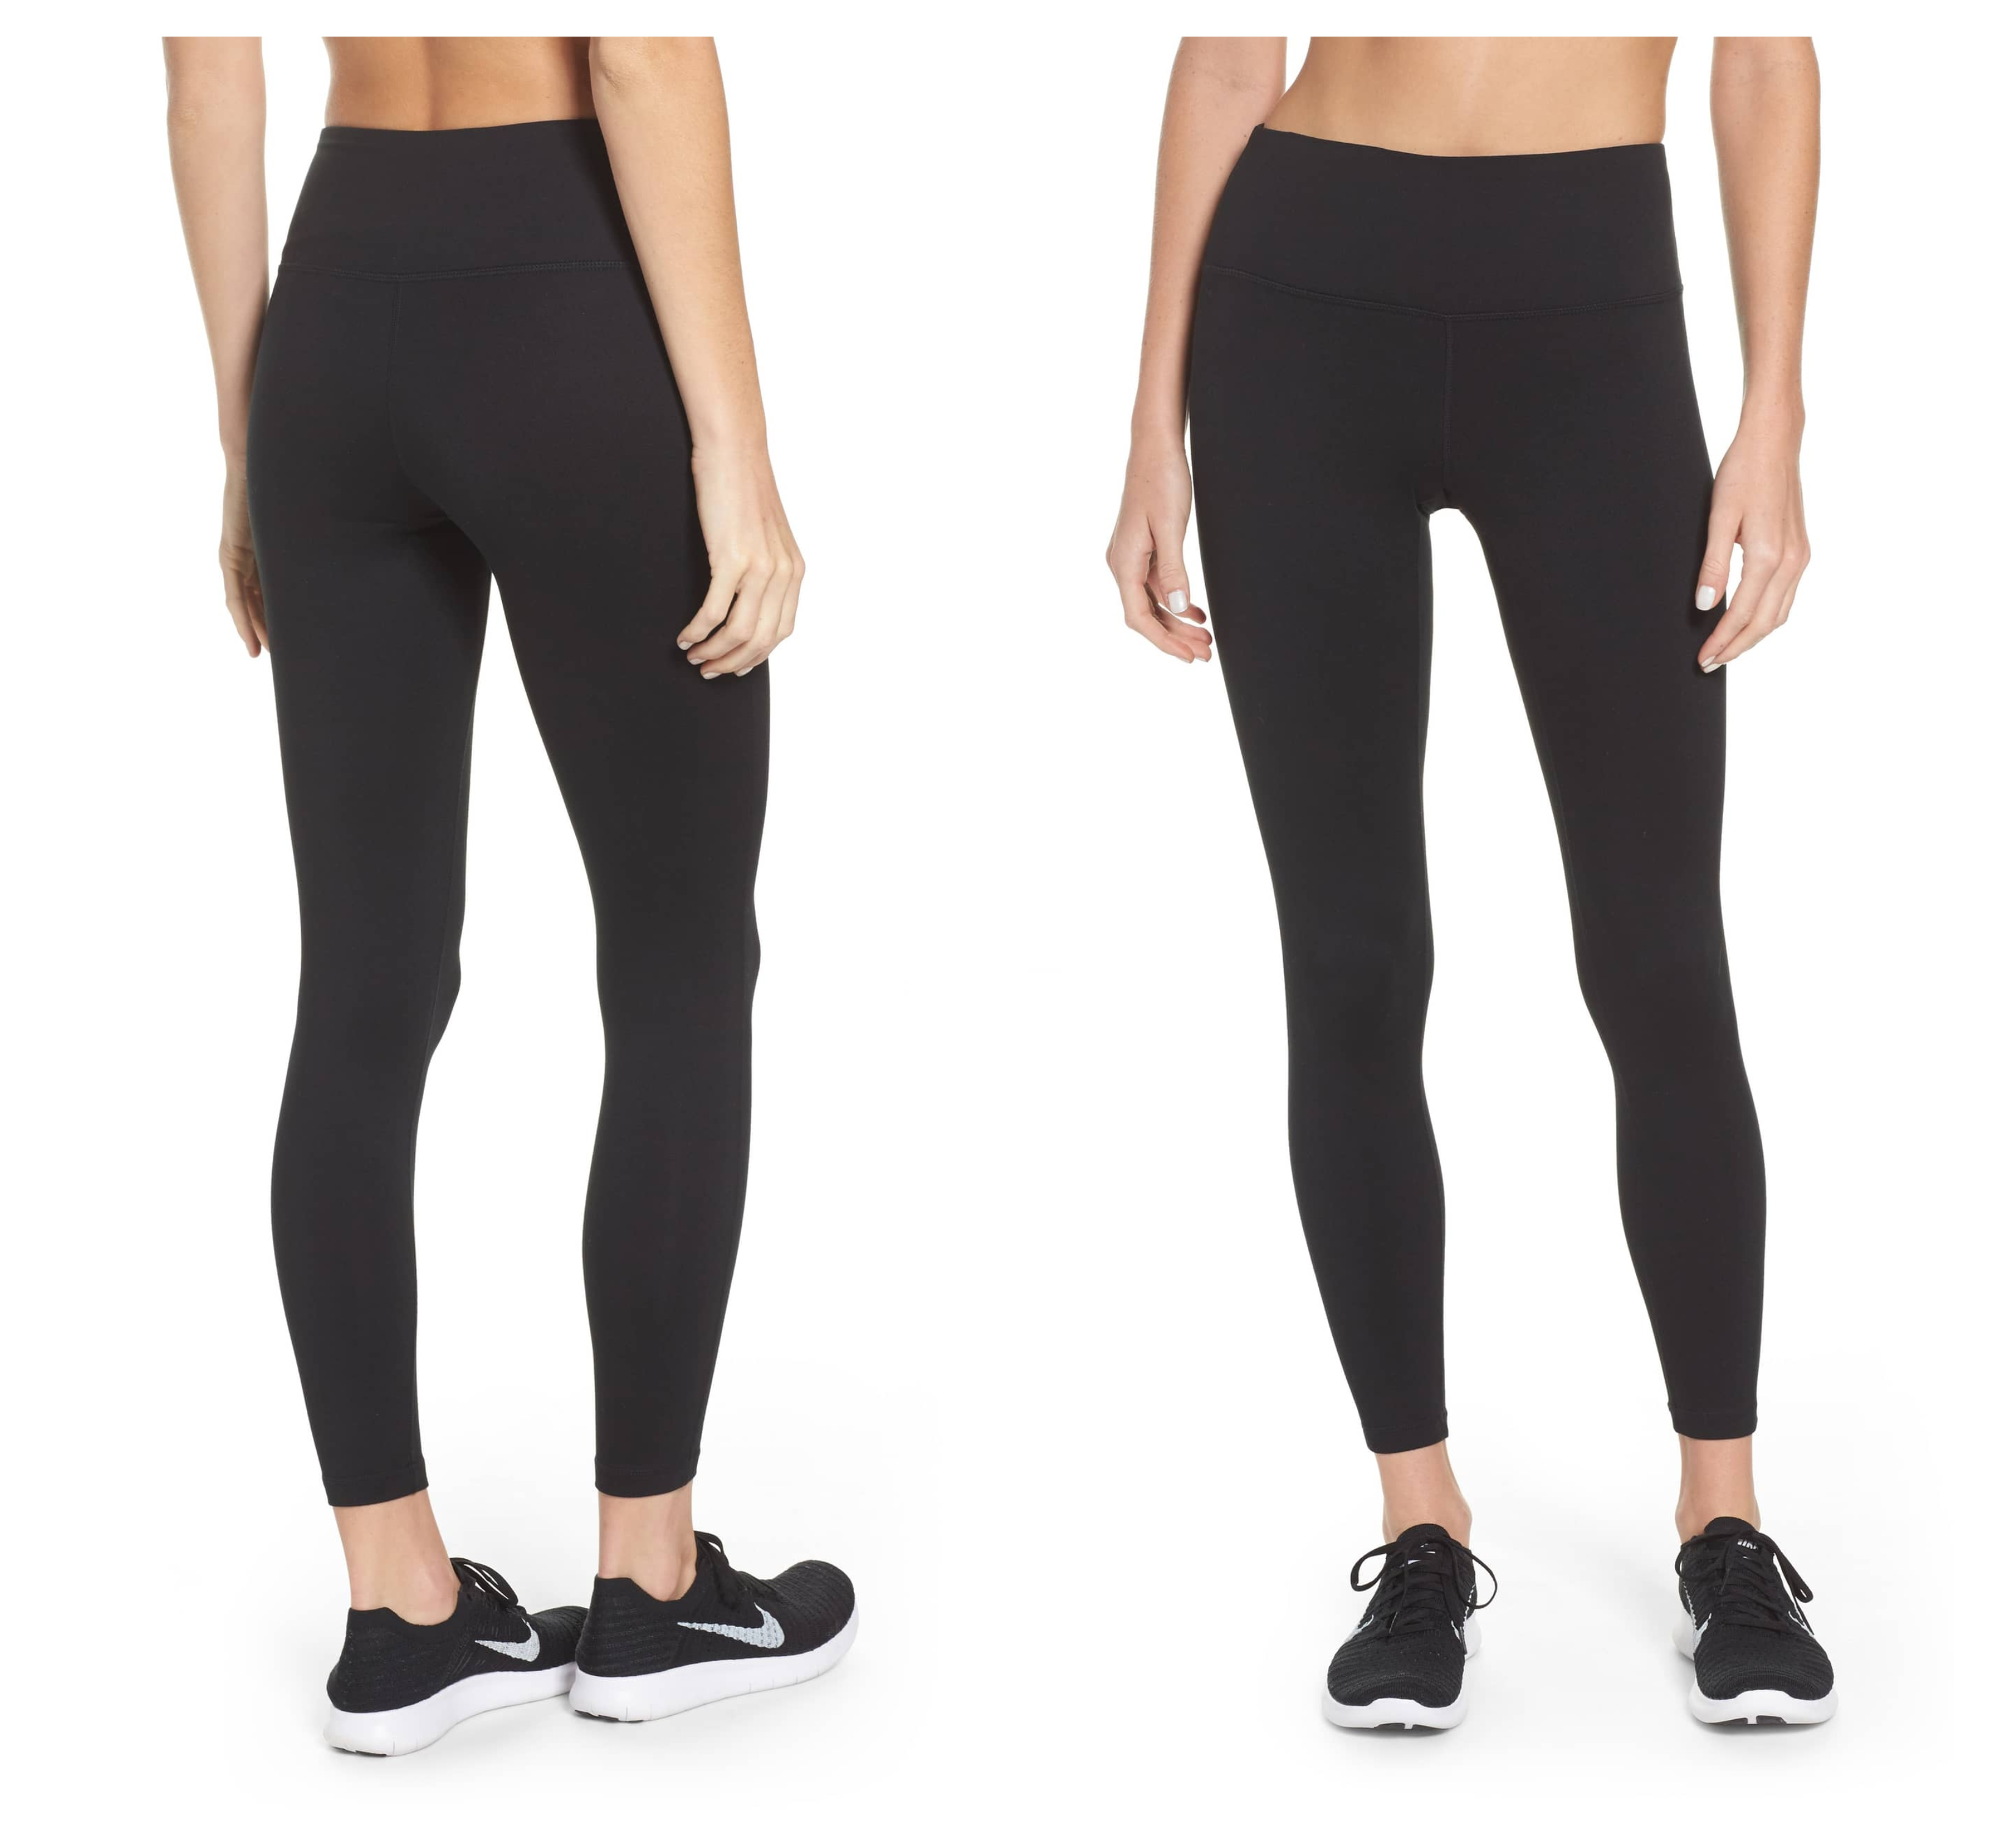 aa67df7a5b40a Nordstrom: Zella Live In 7/8 Leggings – only $32 (reg $54) Shipped ...